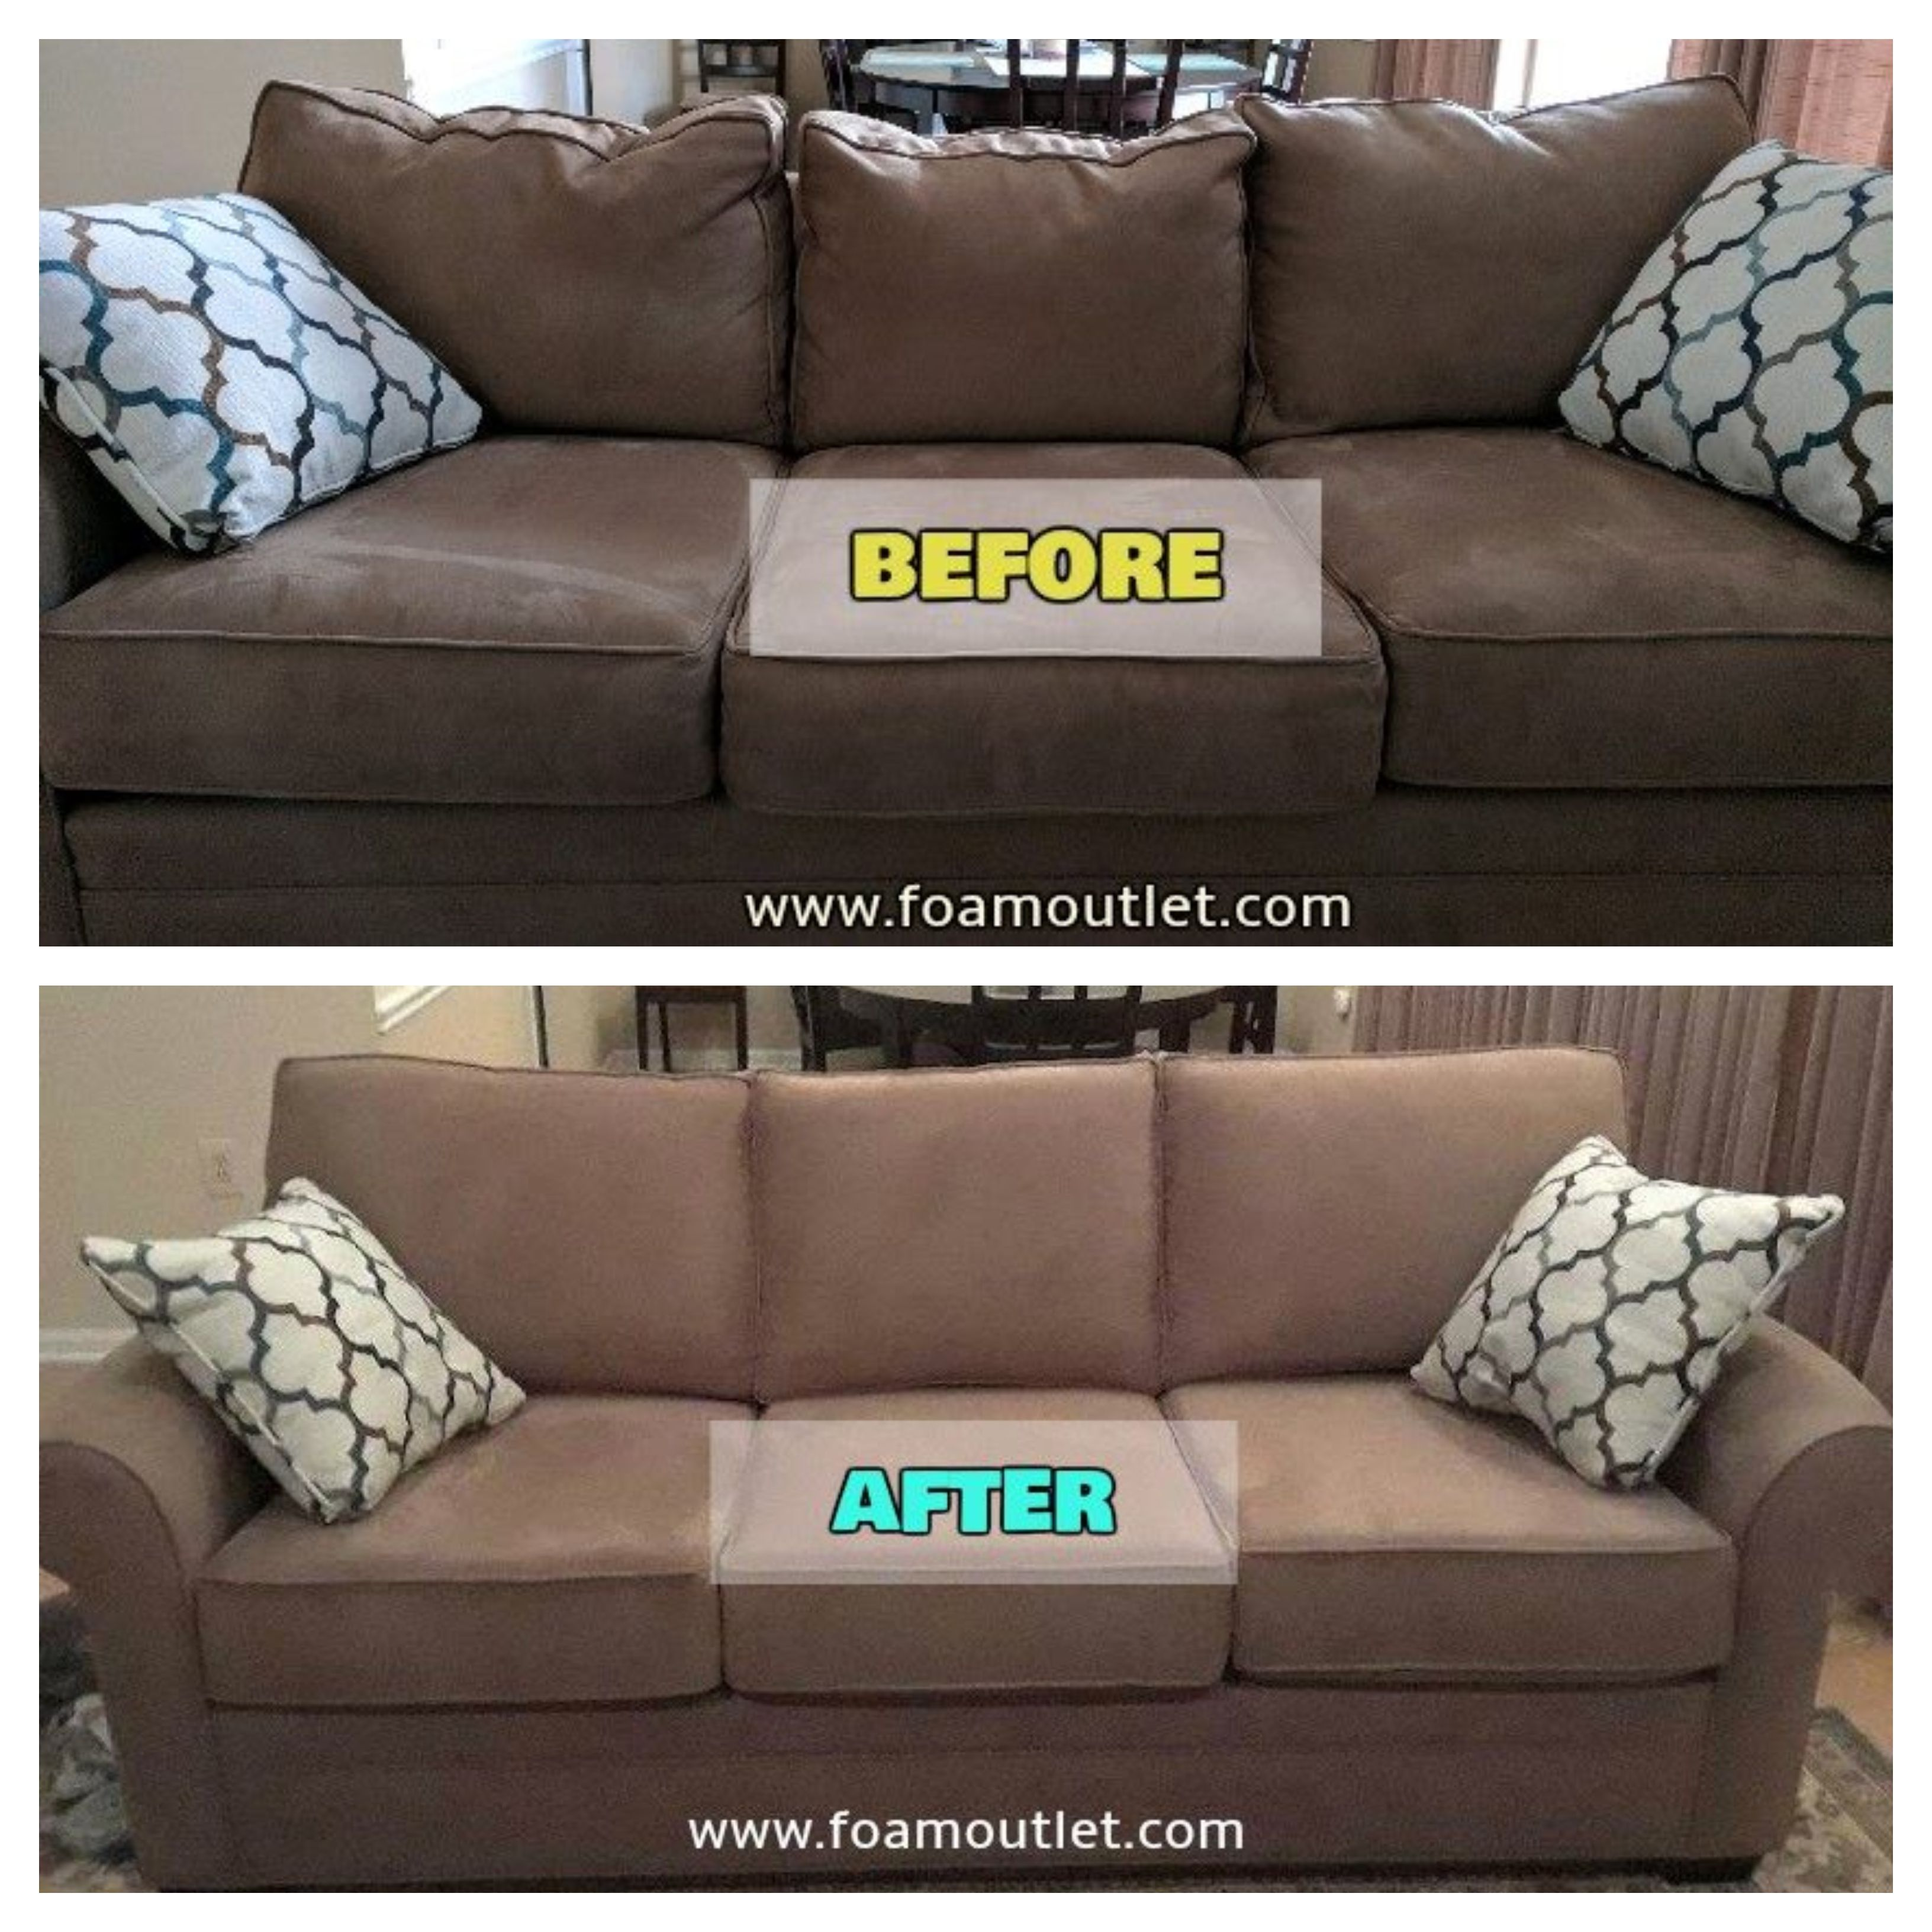 Let The Foam Outlet Help You Rescue Your Old Couch Or Love Seat In 2020 Foam Sofa Cushions On Sofa Couch Cushion Foam